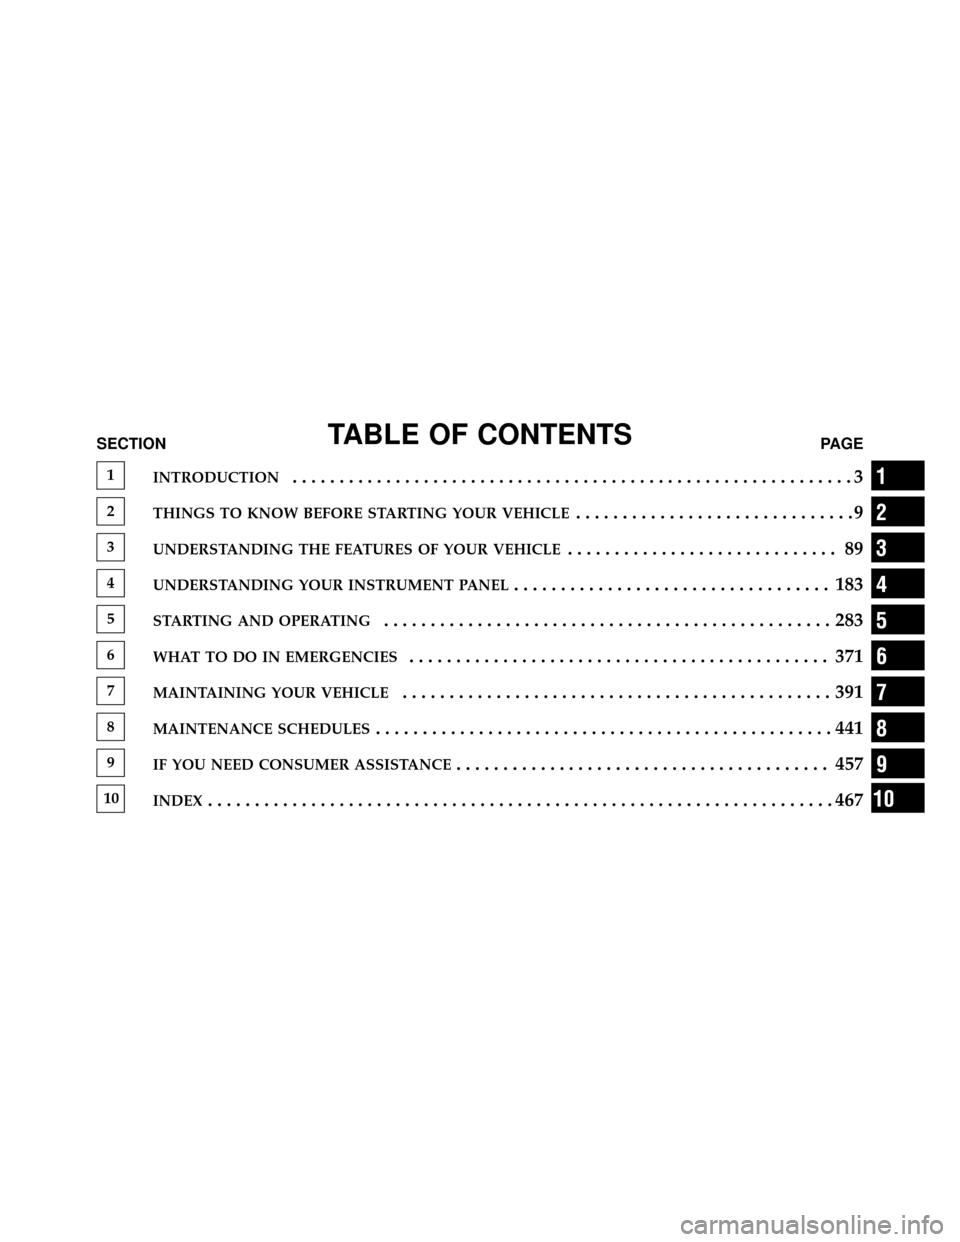 CHRYSLER 200 2011 1.G Owners Manual TABLE OF CONTENTSSECTIONPAGE 1INTRODUCTION............................................................3 2THINGS TO KNOW BEFORE STARTING YOUR VEHICLE..............................9 3UNDERSTANDING THE F